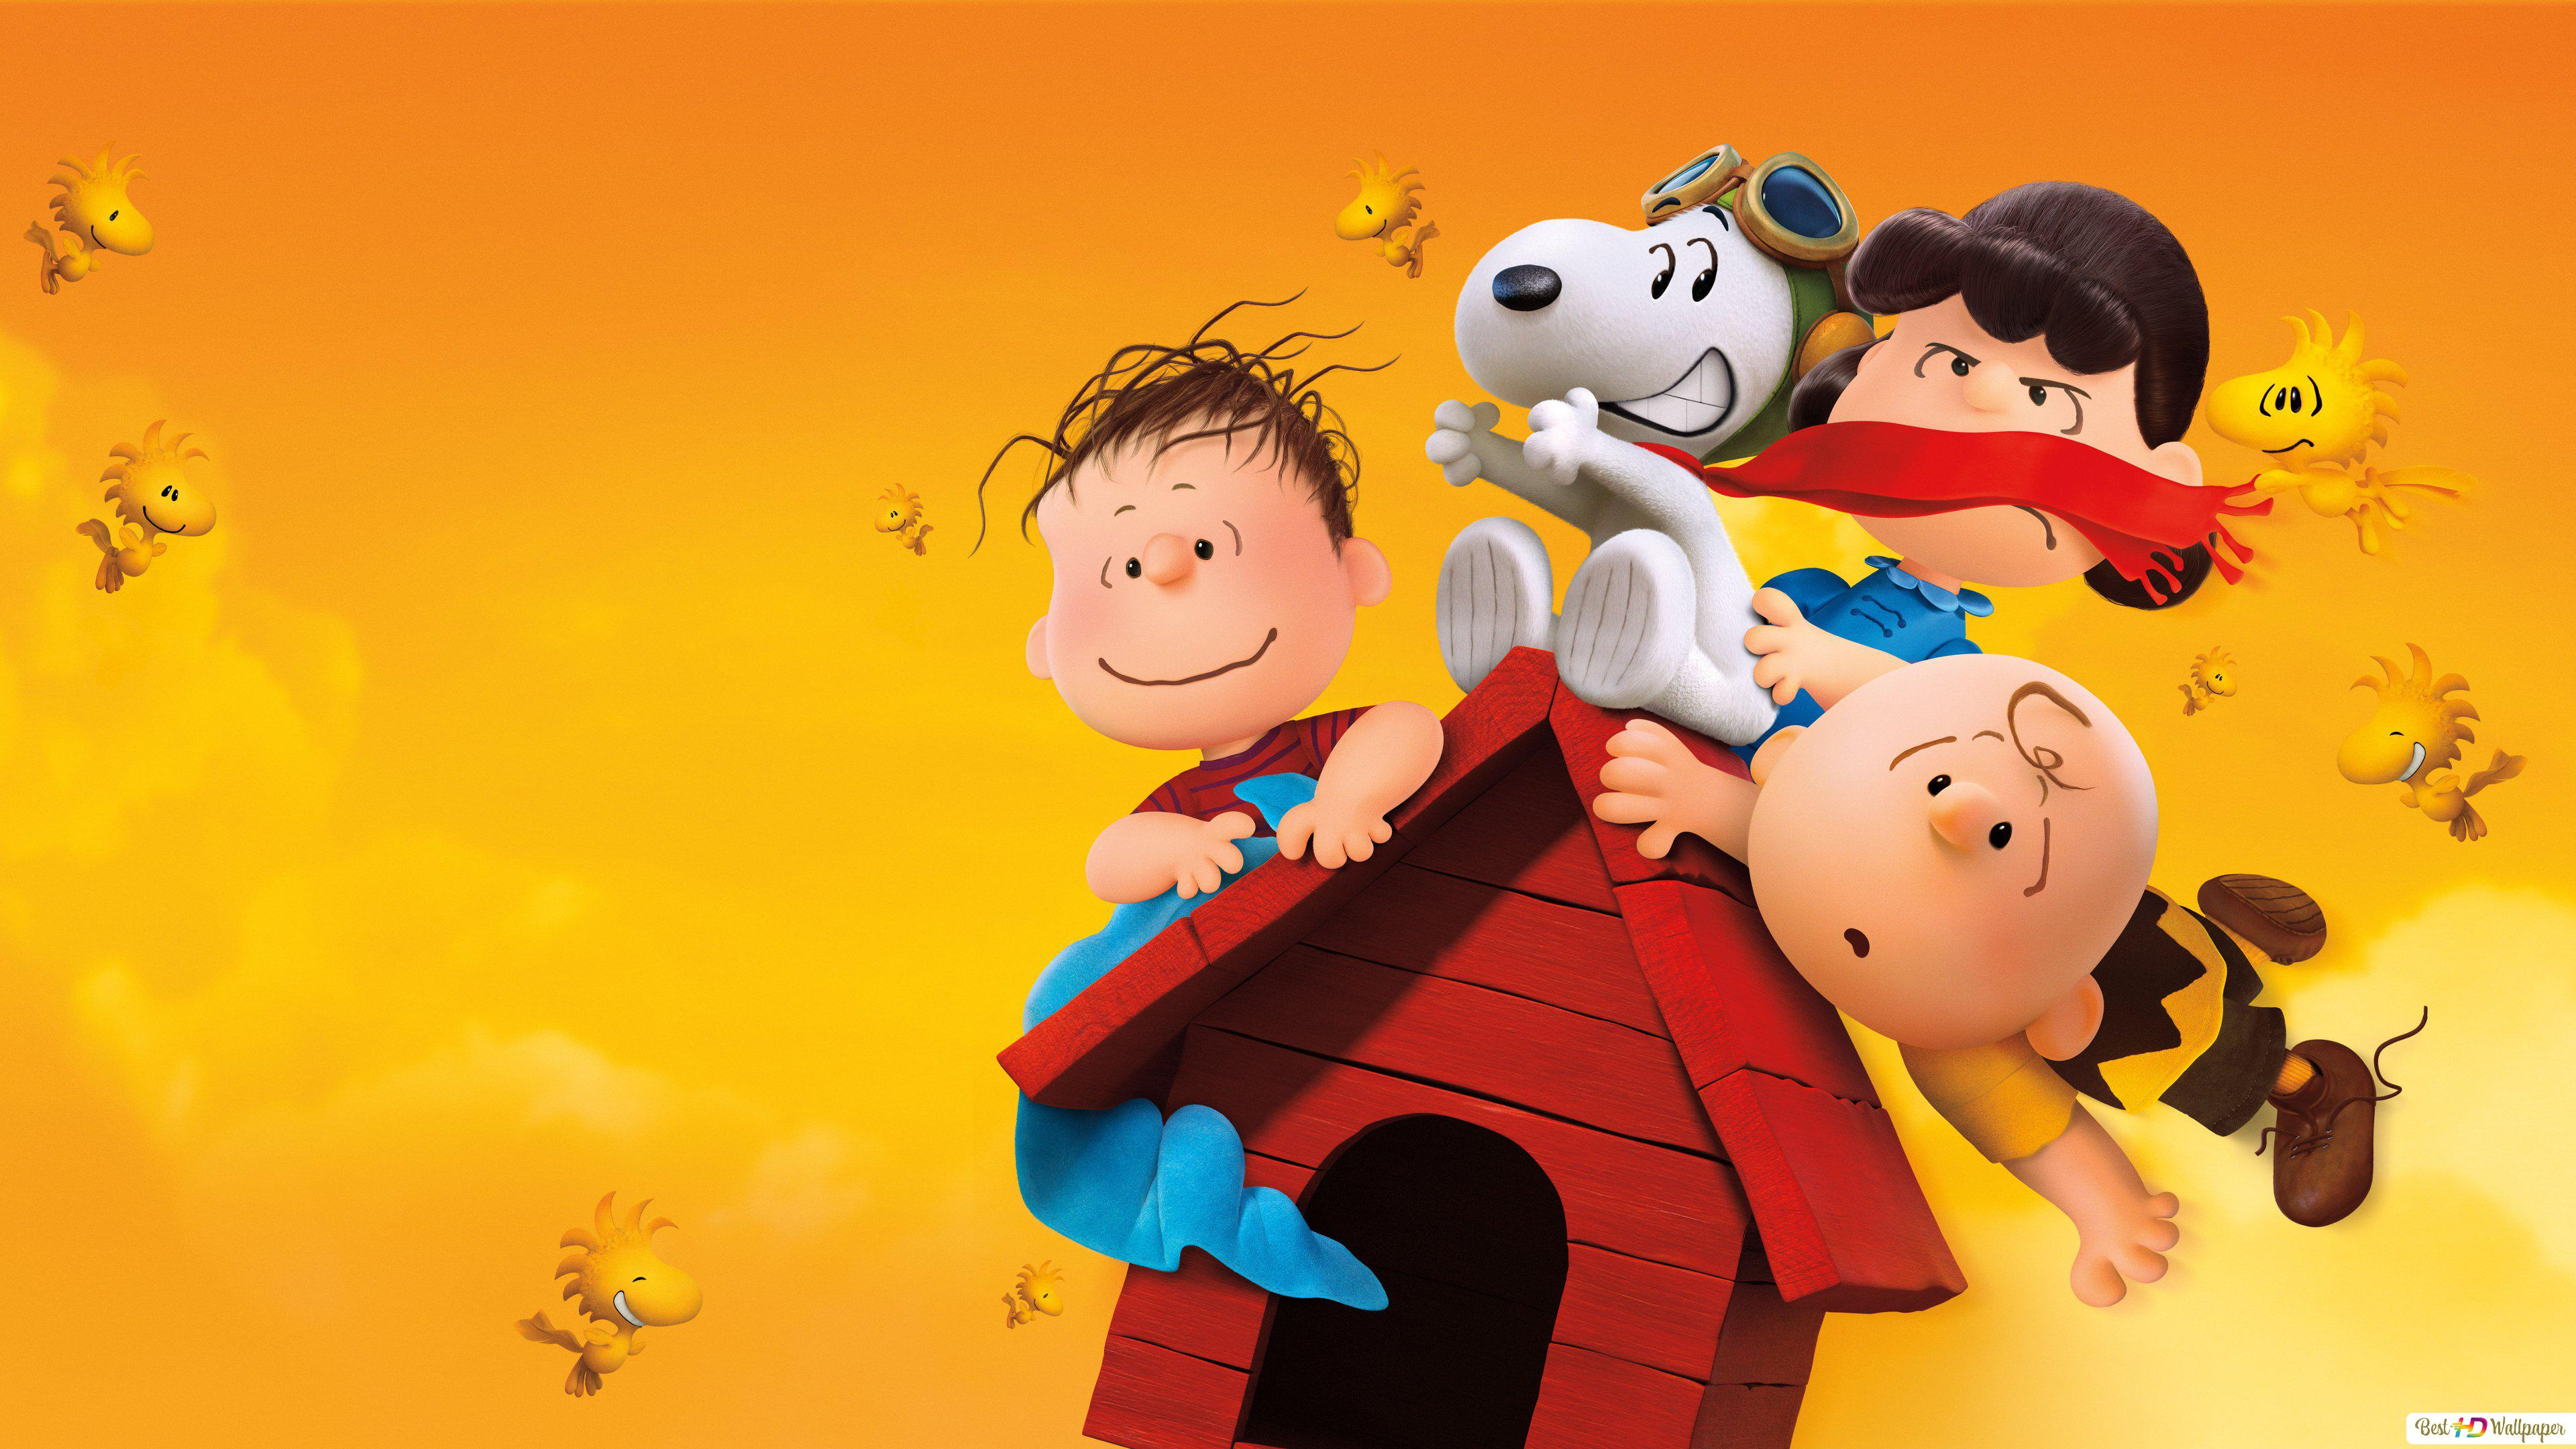 Charlie S Friends And Snoopy Hd Wallpaper Download